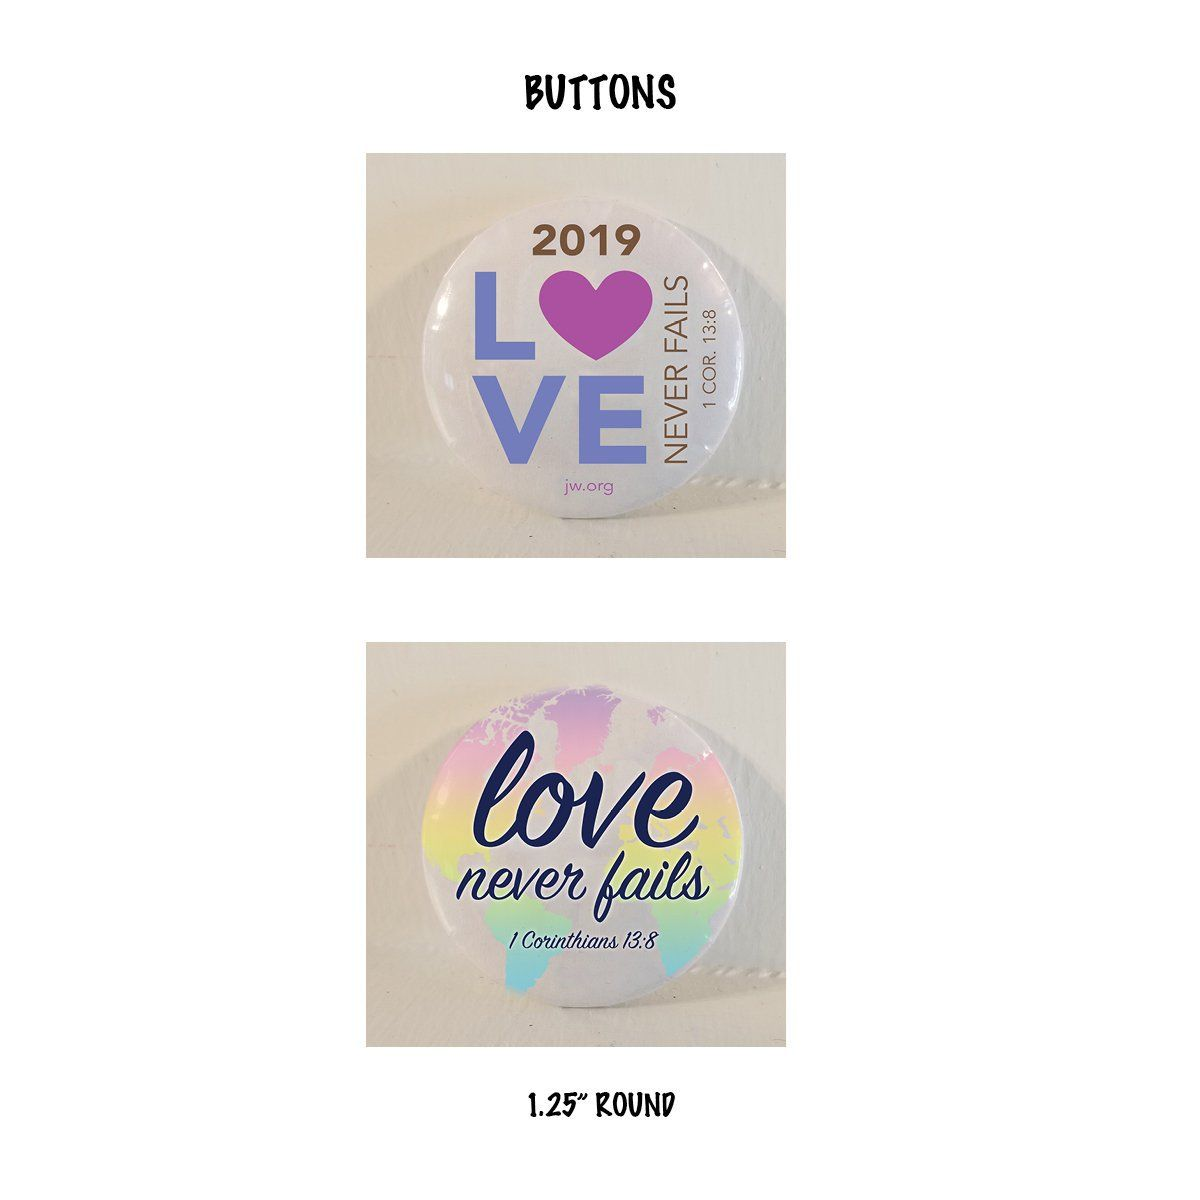 2019 International Convention Gift Button Pin Love Never